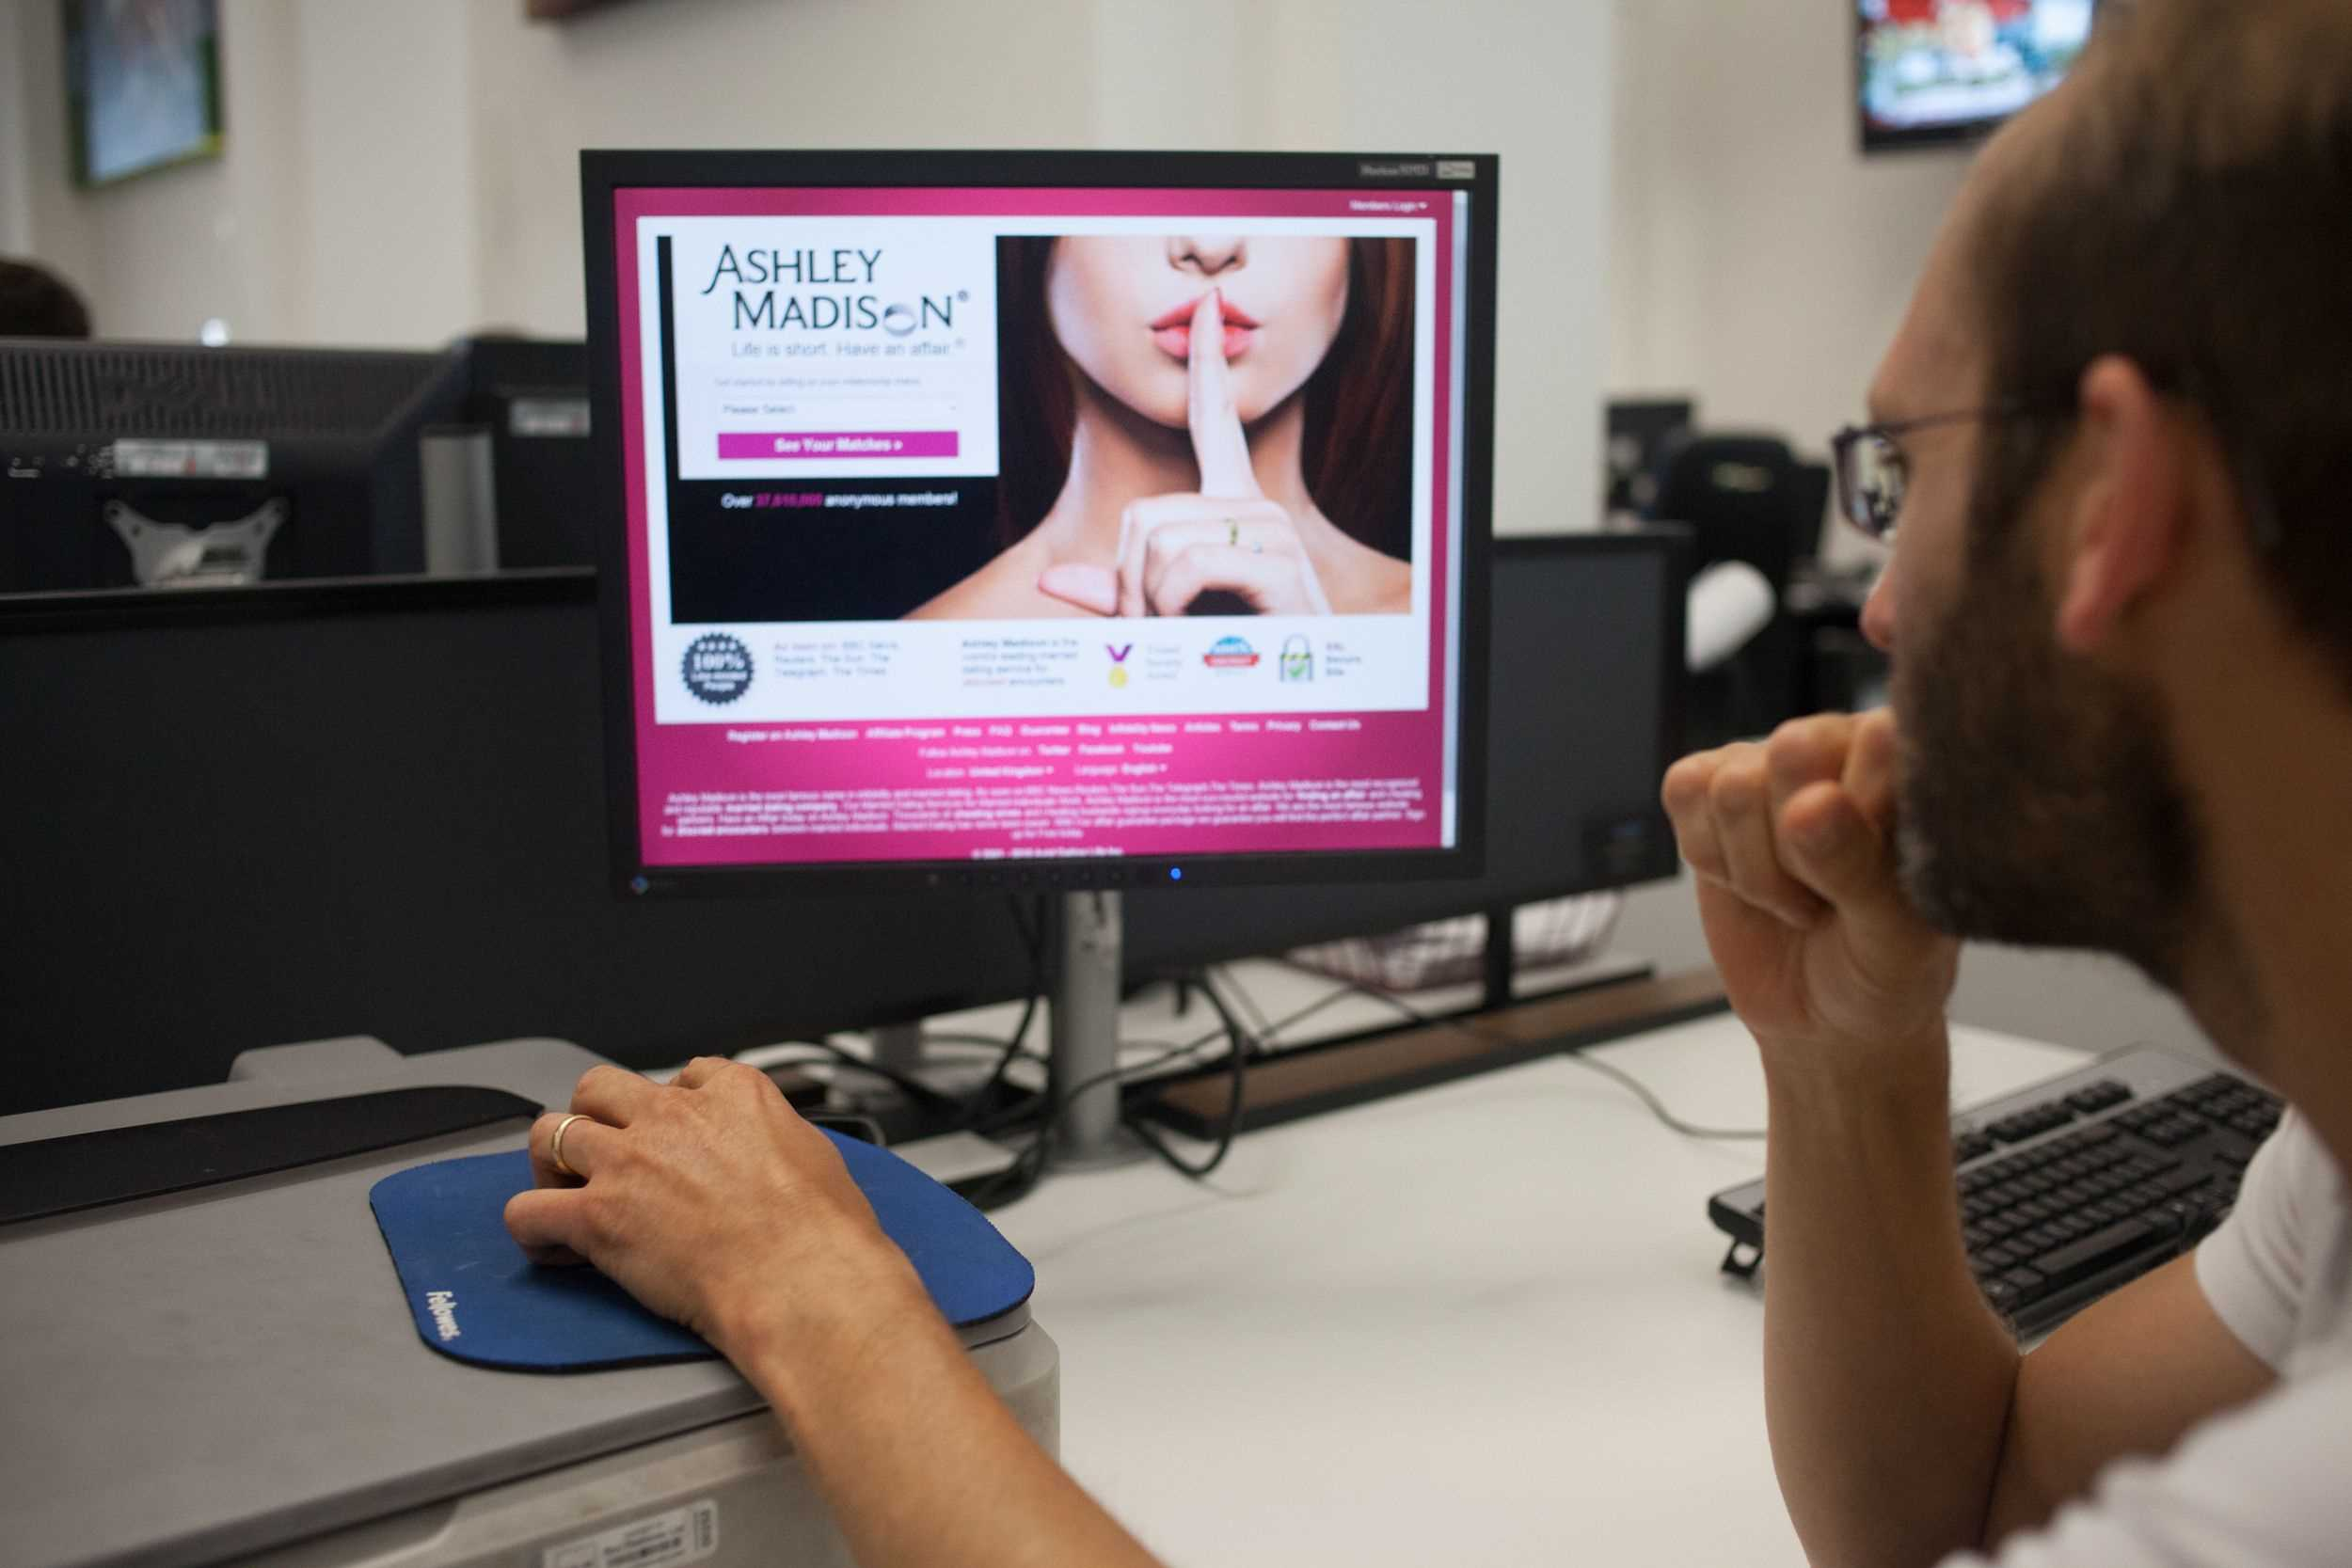 Ashley Madison hack highlights cyber extortion risks